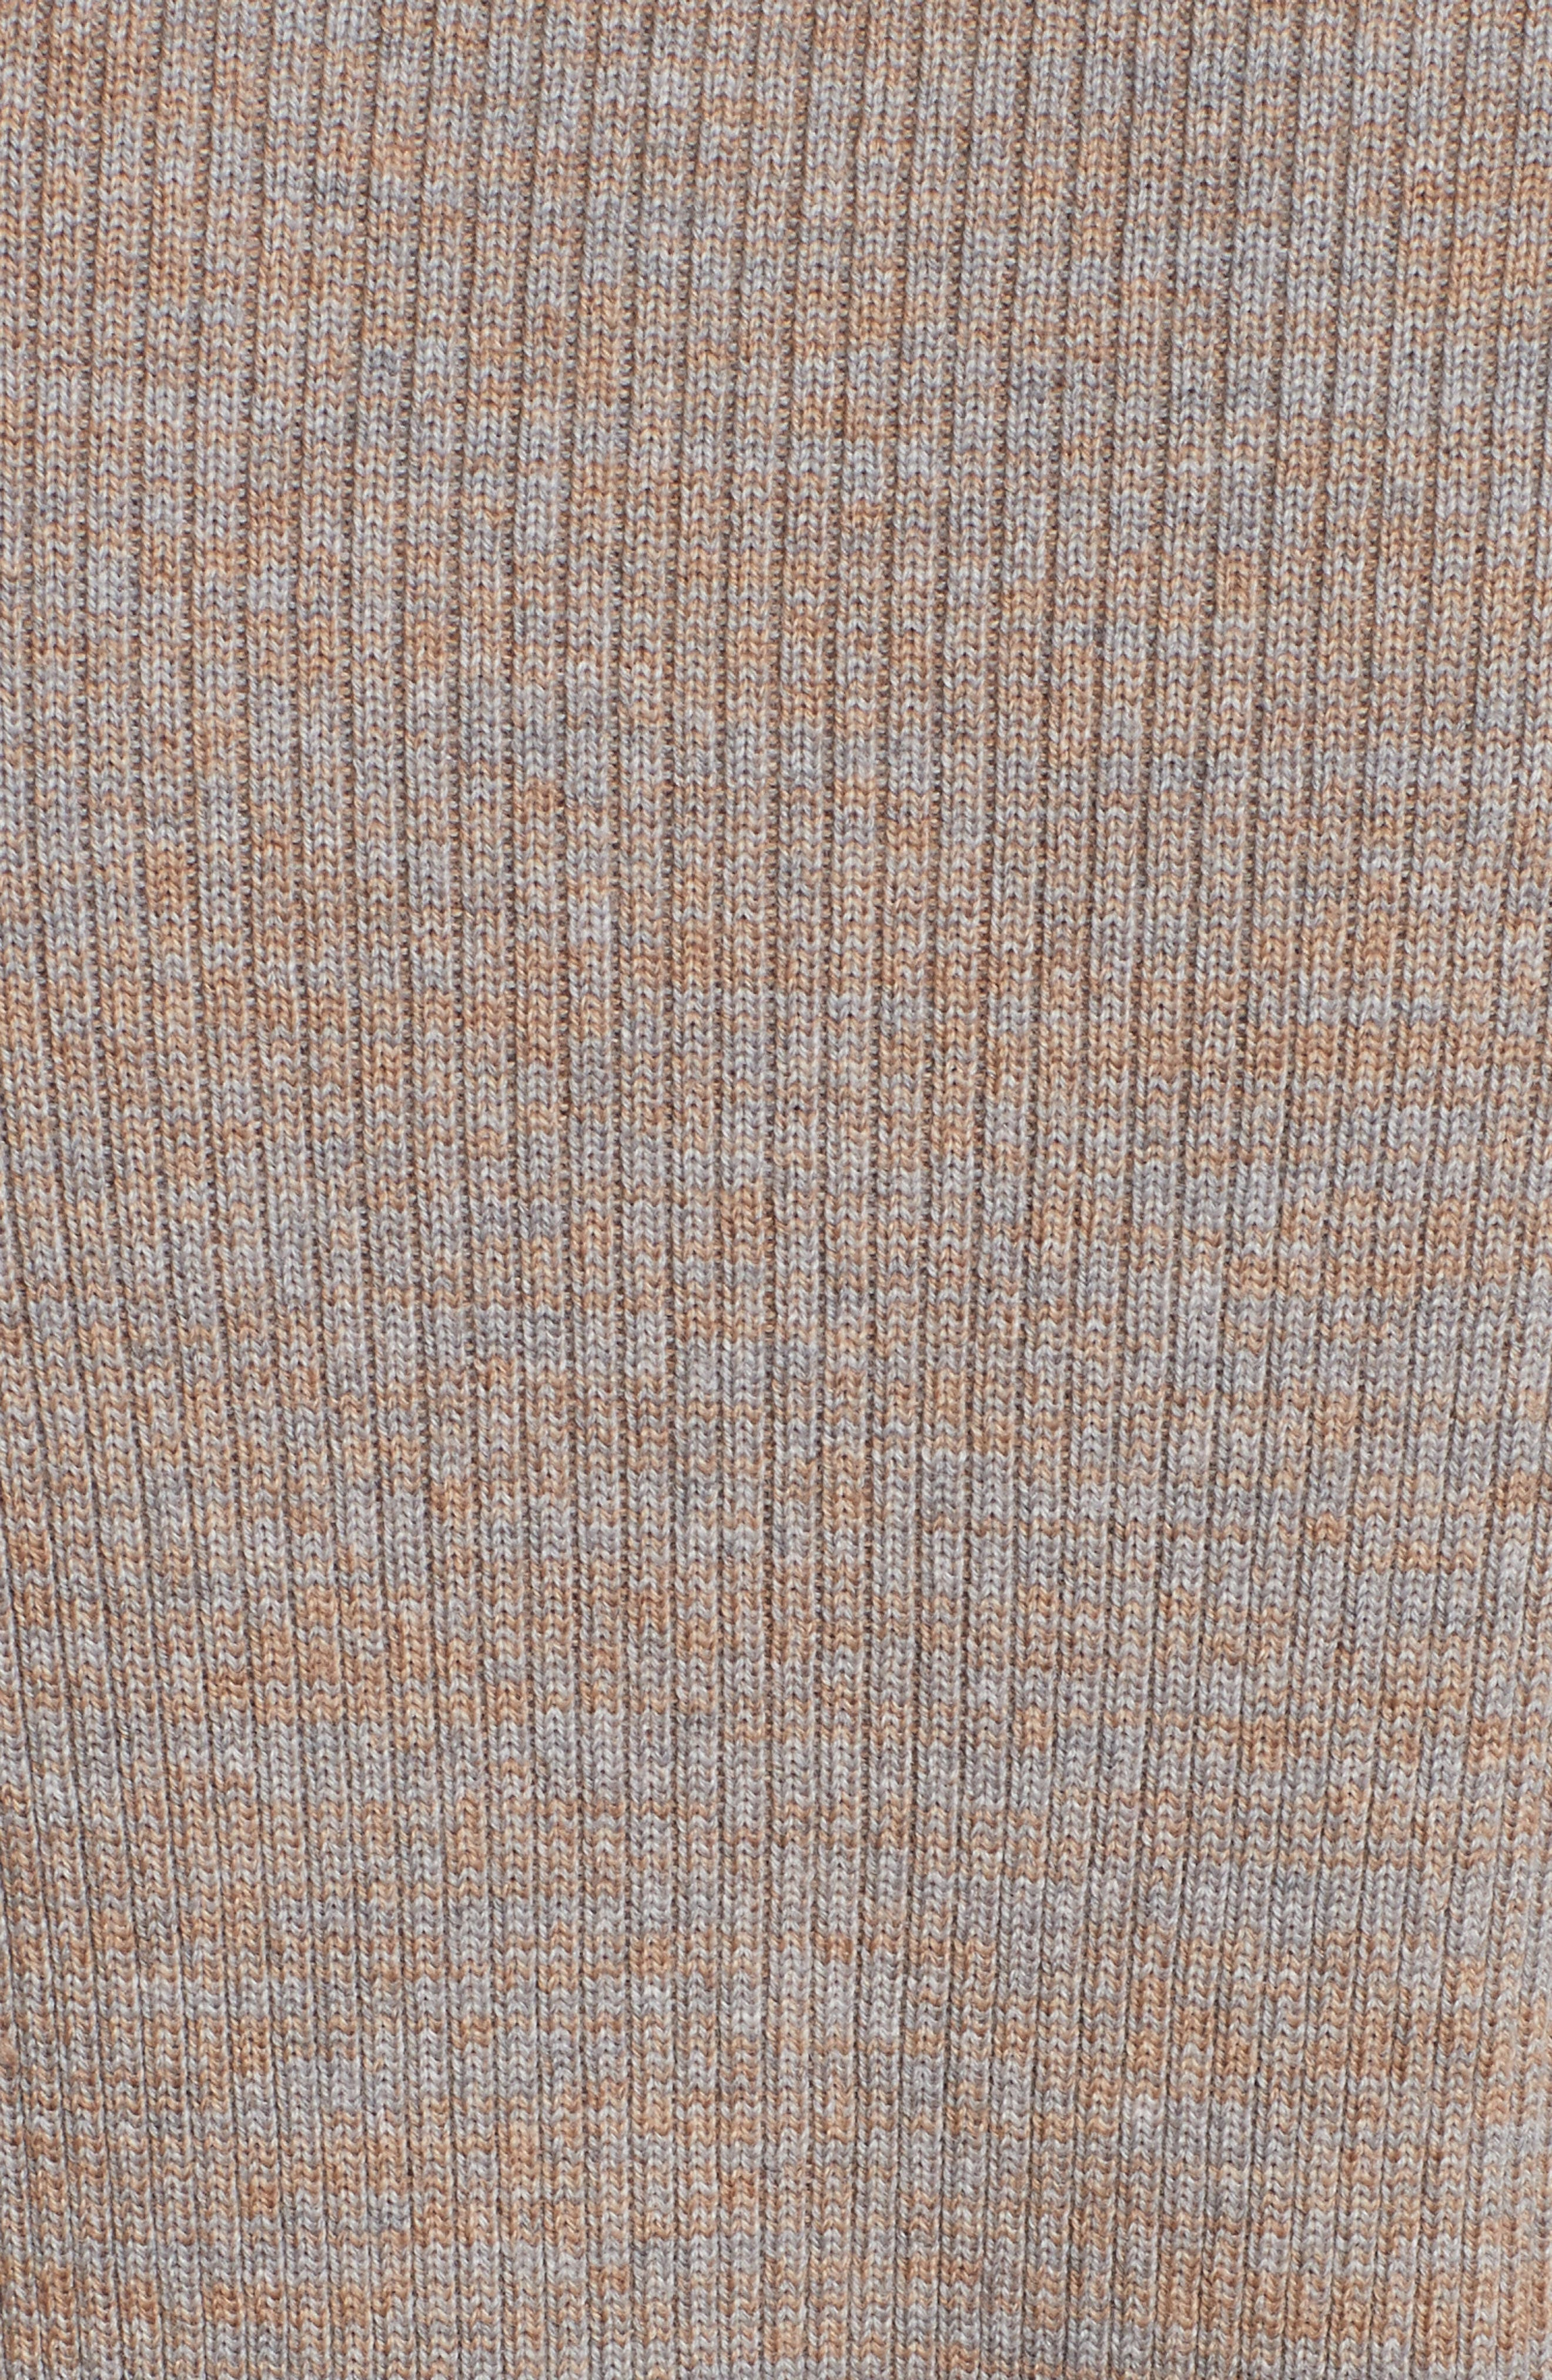 Ribbed V-Neck Wool Sweater,                             Alternate thumbnail 5, color,                             208